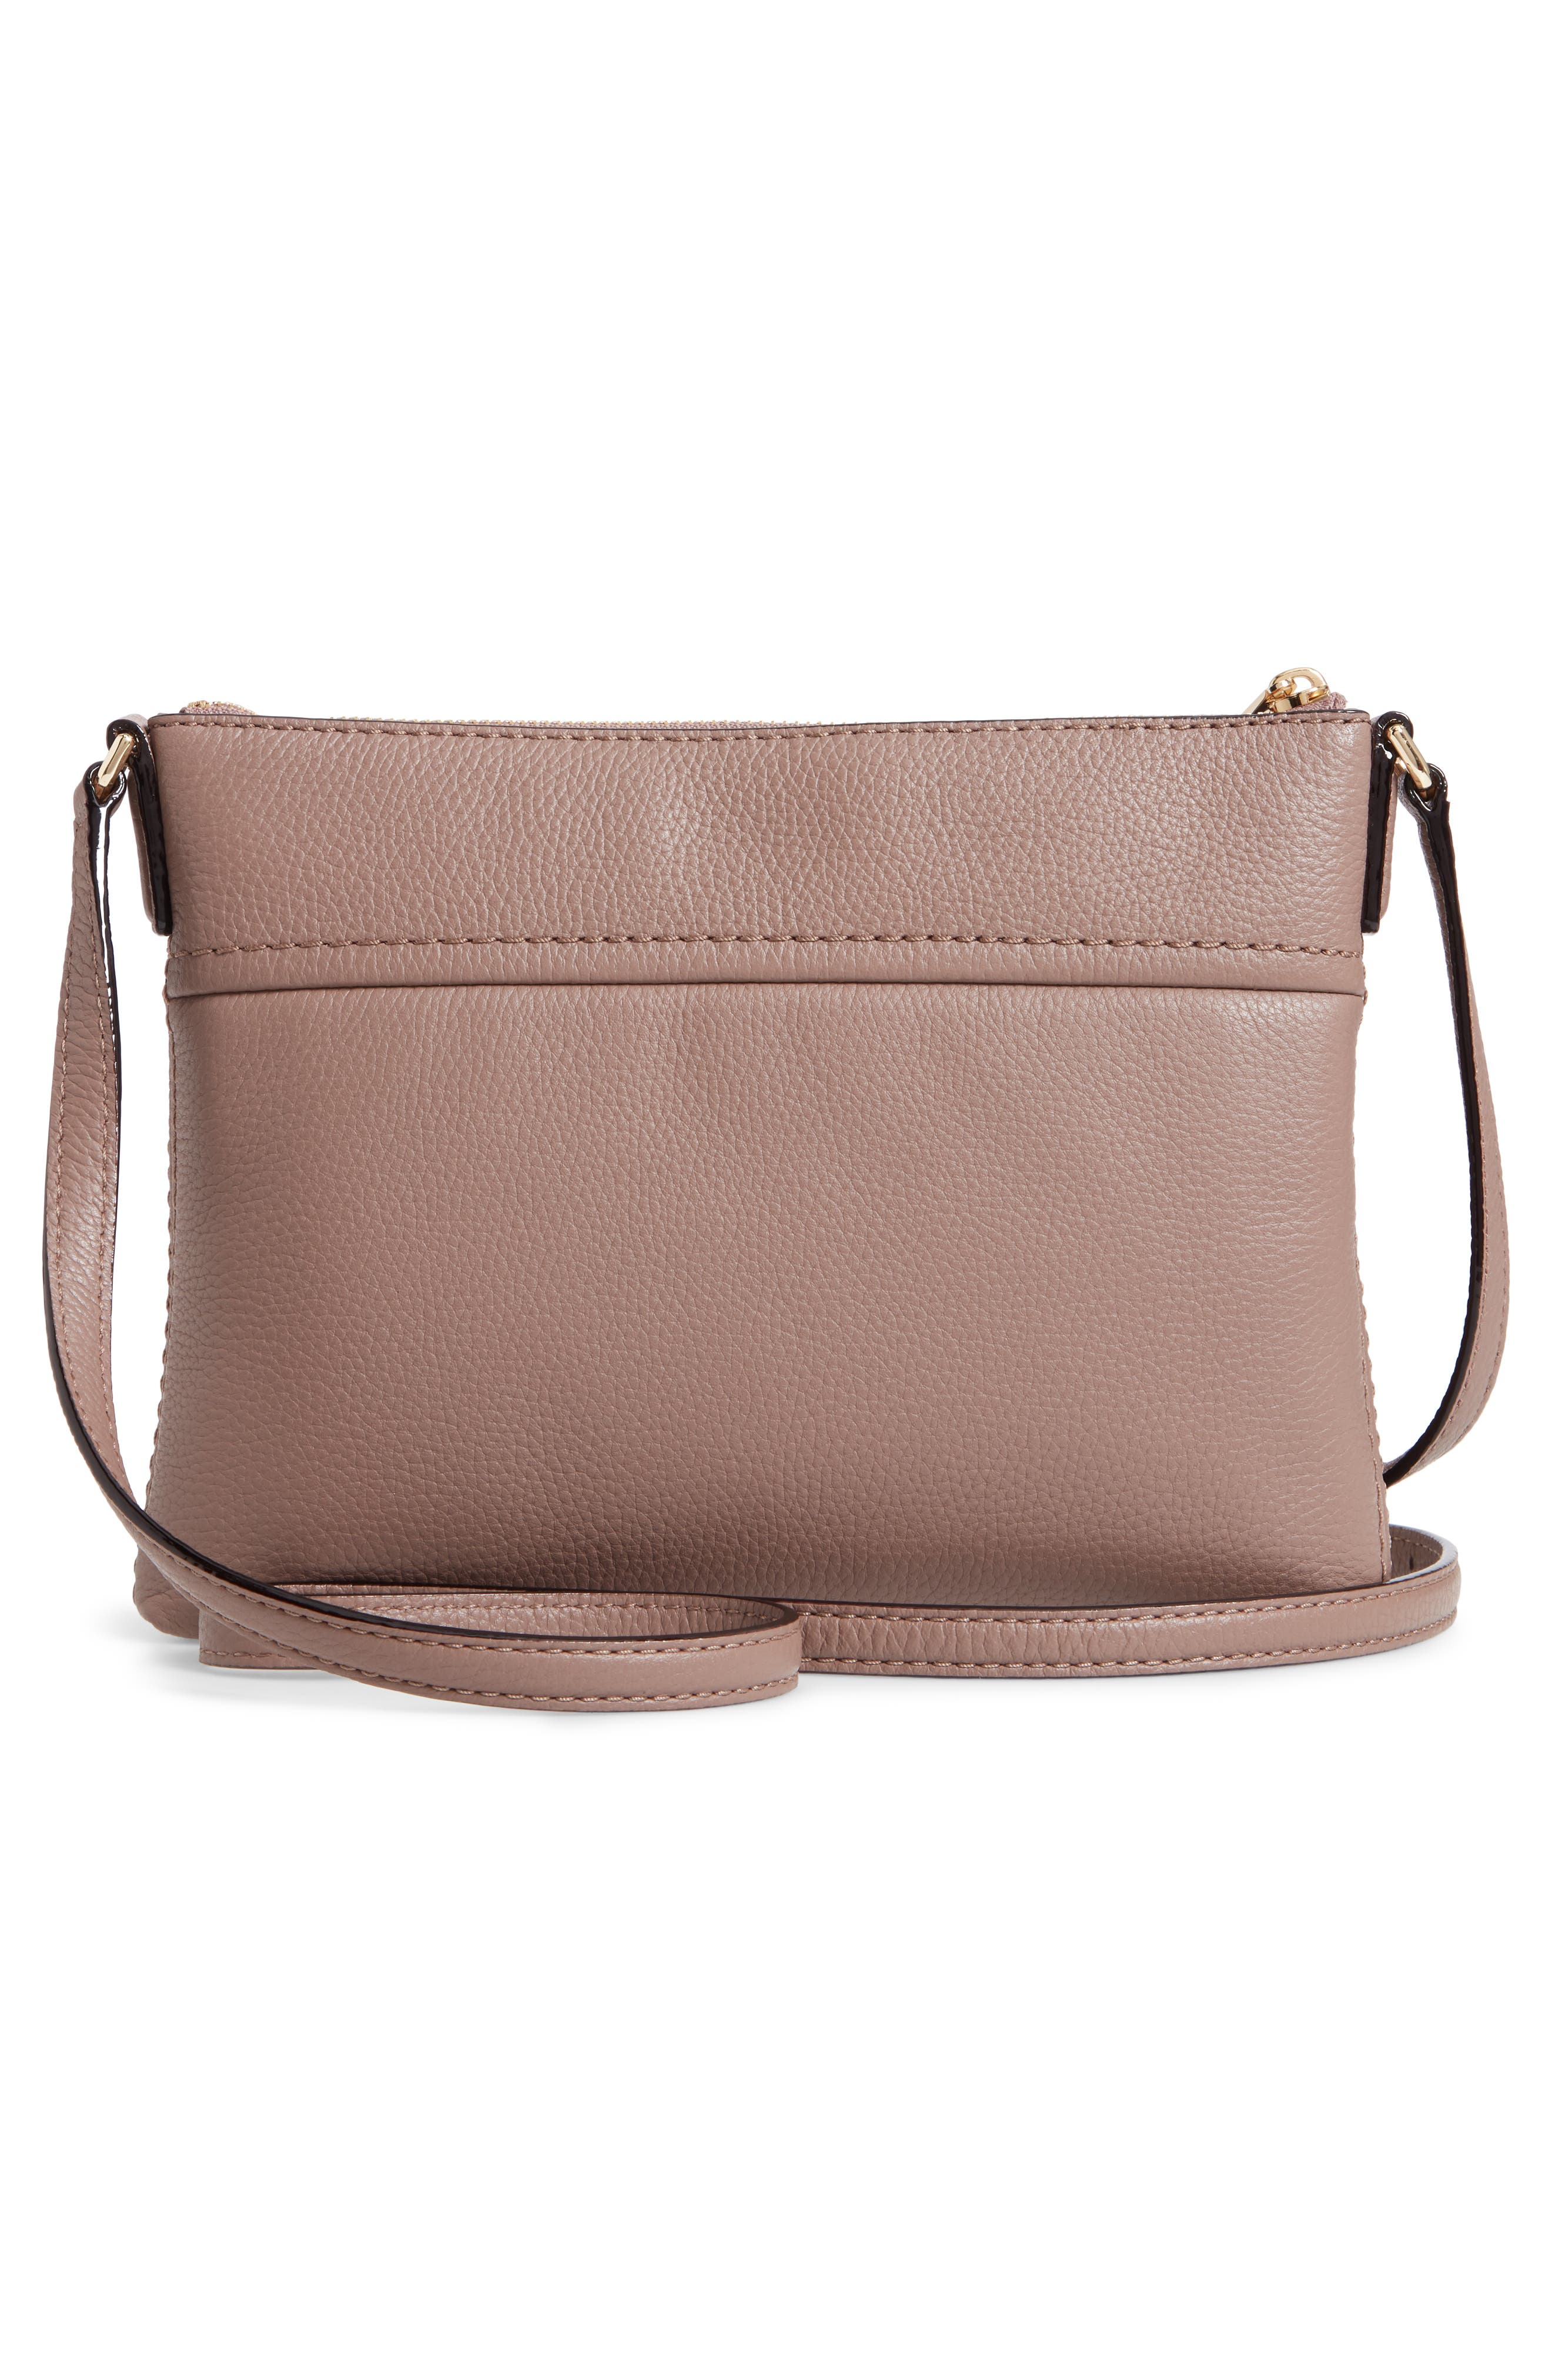 jackson street - gabriele leather crossbody bag,                             Alternate thumbnail 3, color,                             BROWNSTONE